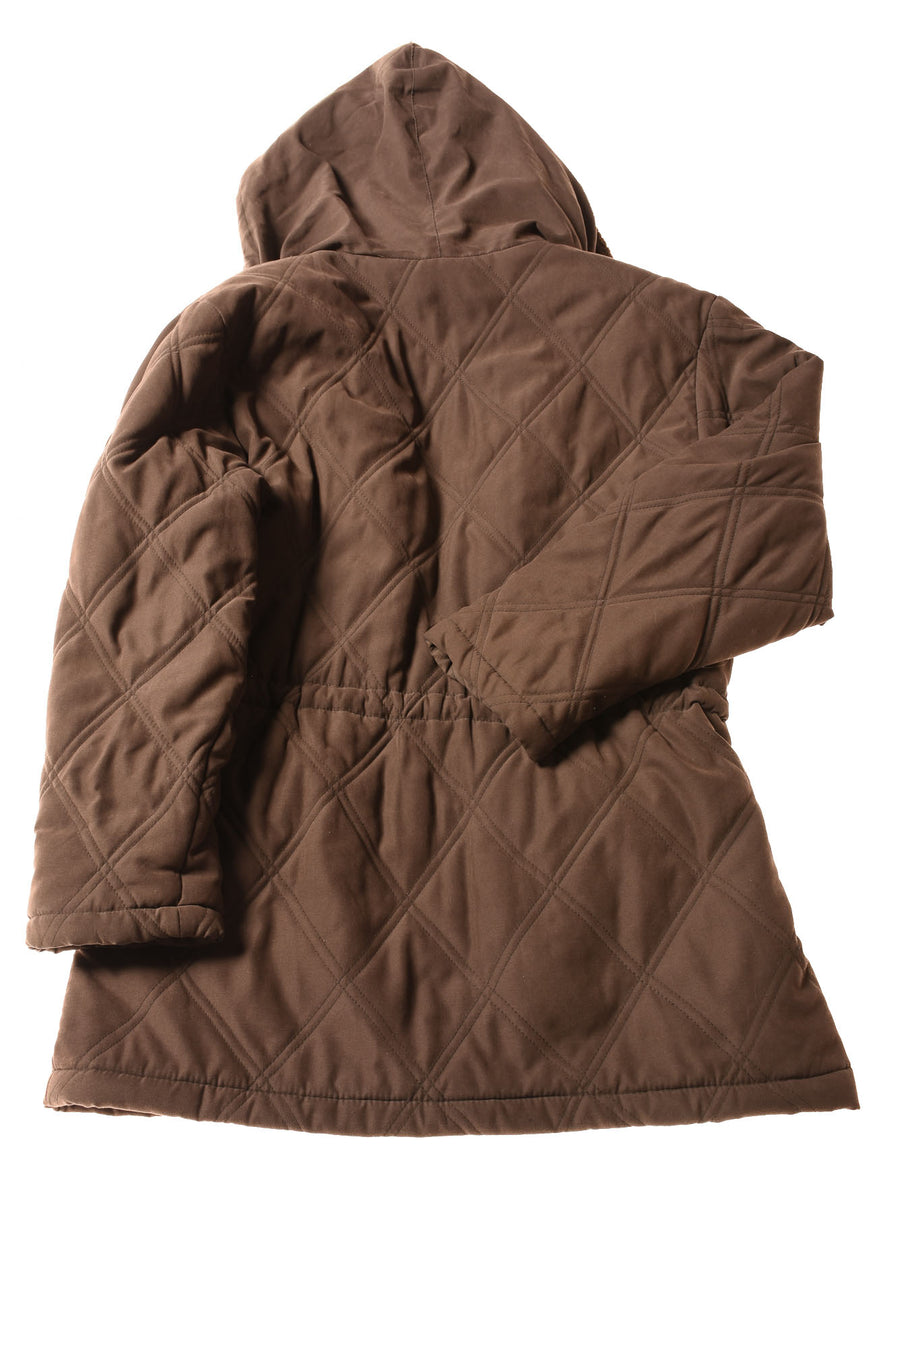 USED Larry Levine Women's Coat Small Brown